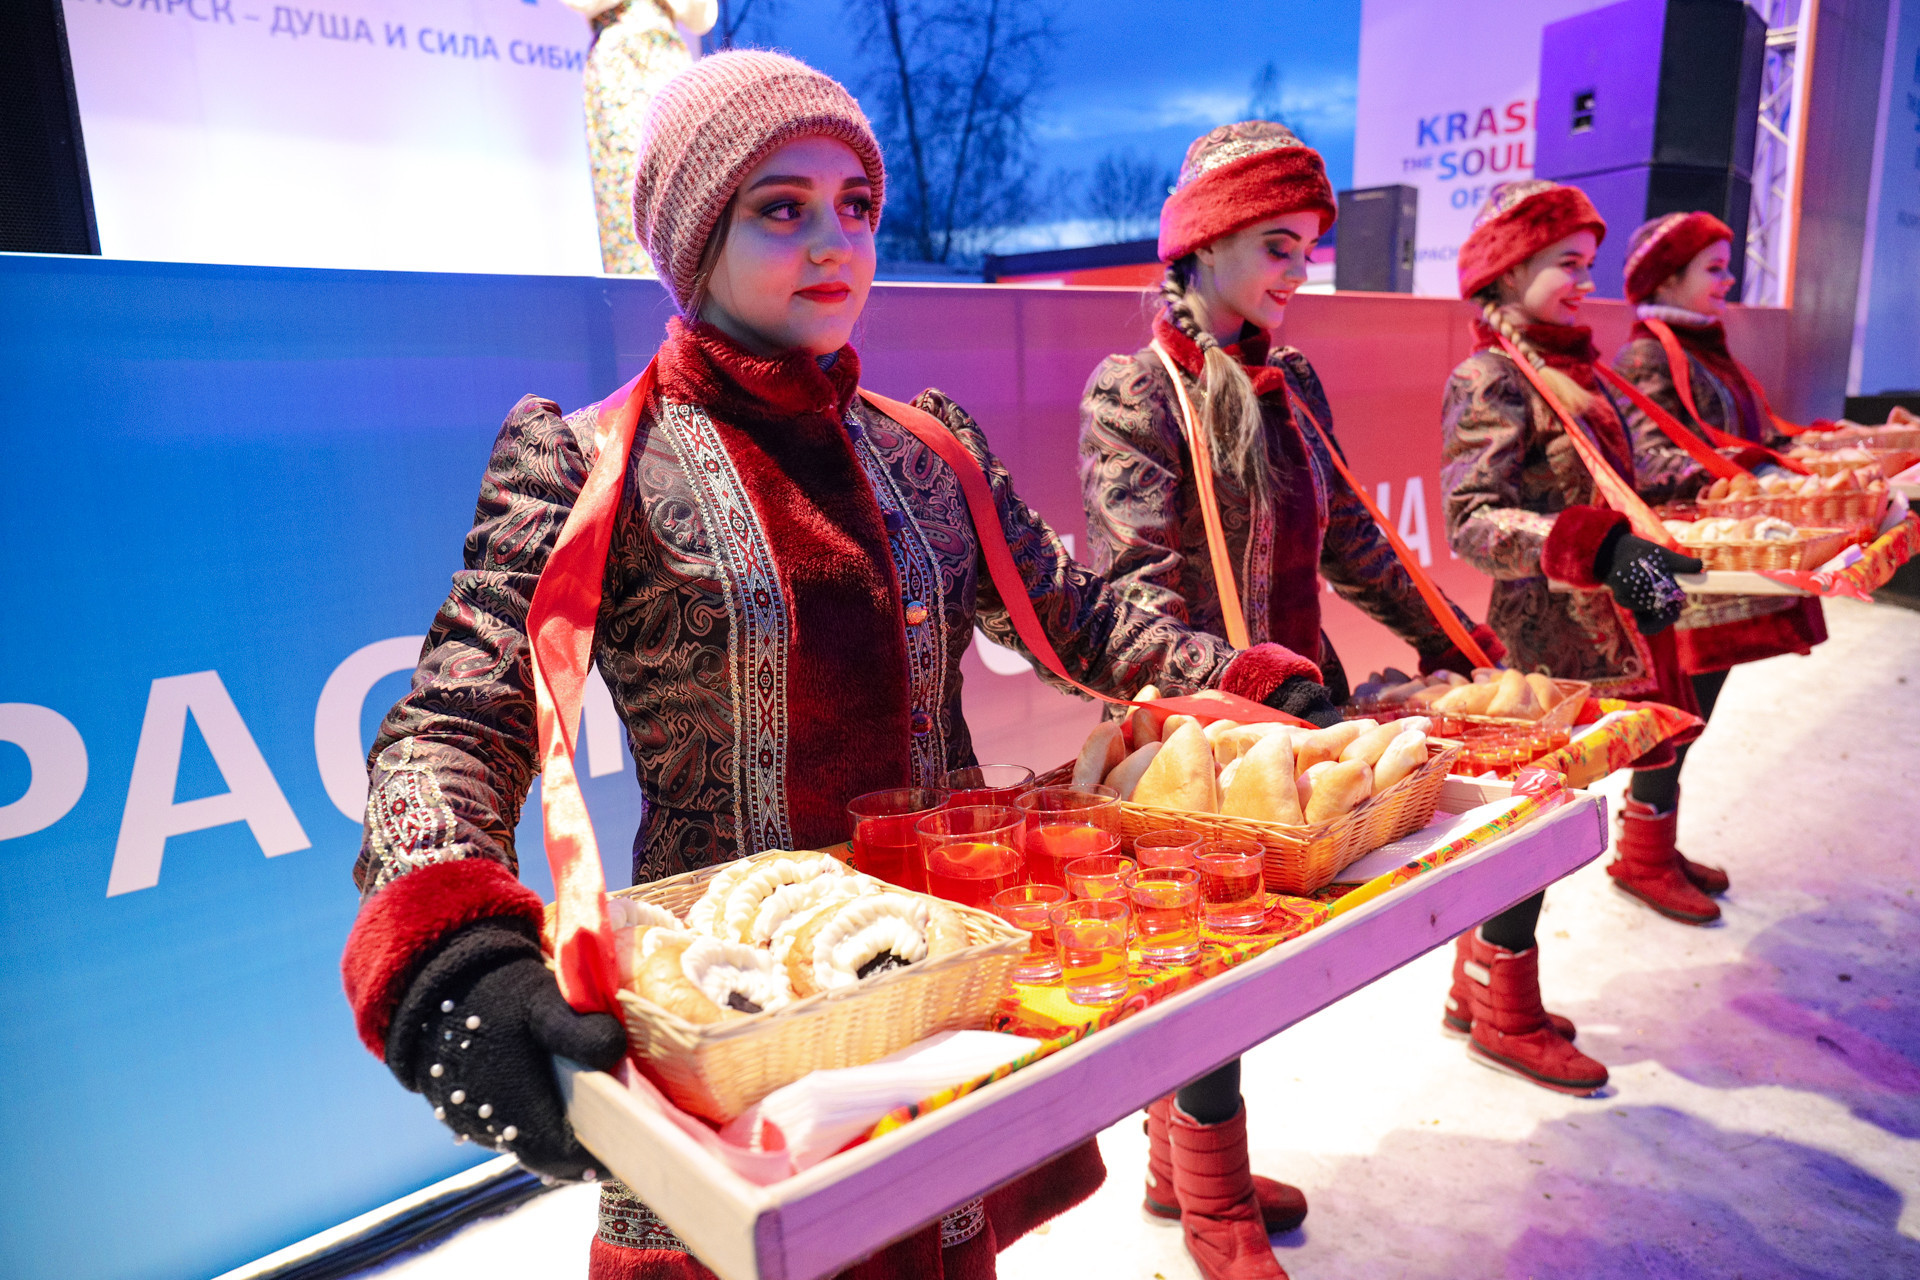 Sculptors were given pasties at the opening event of the ice festival and contest ©Krasnoyarsk 2019